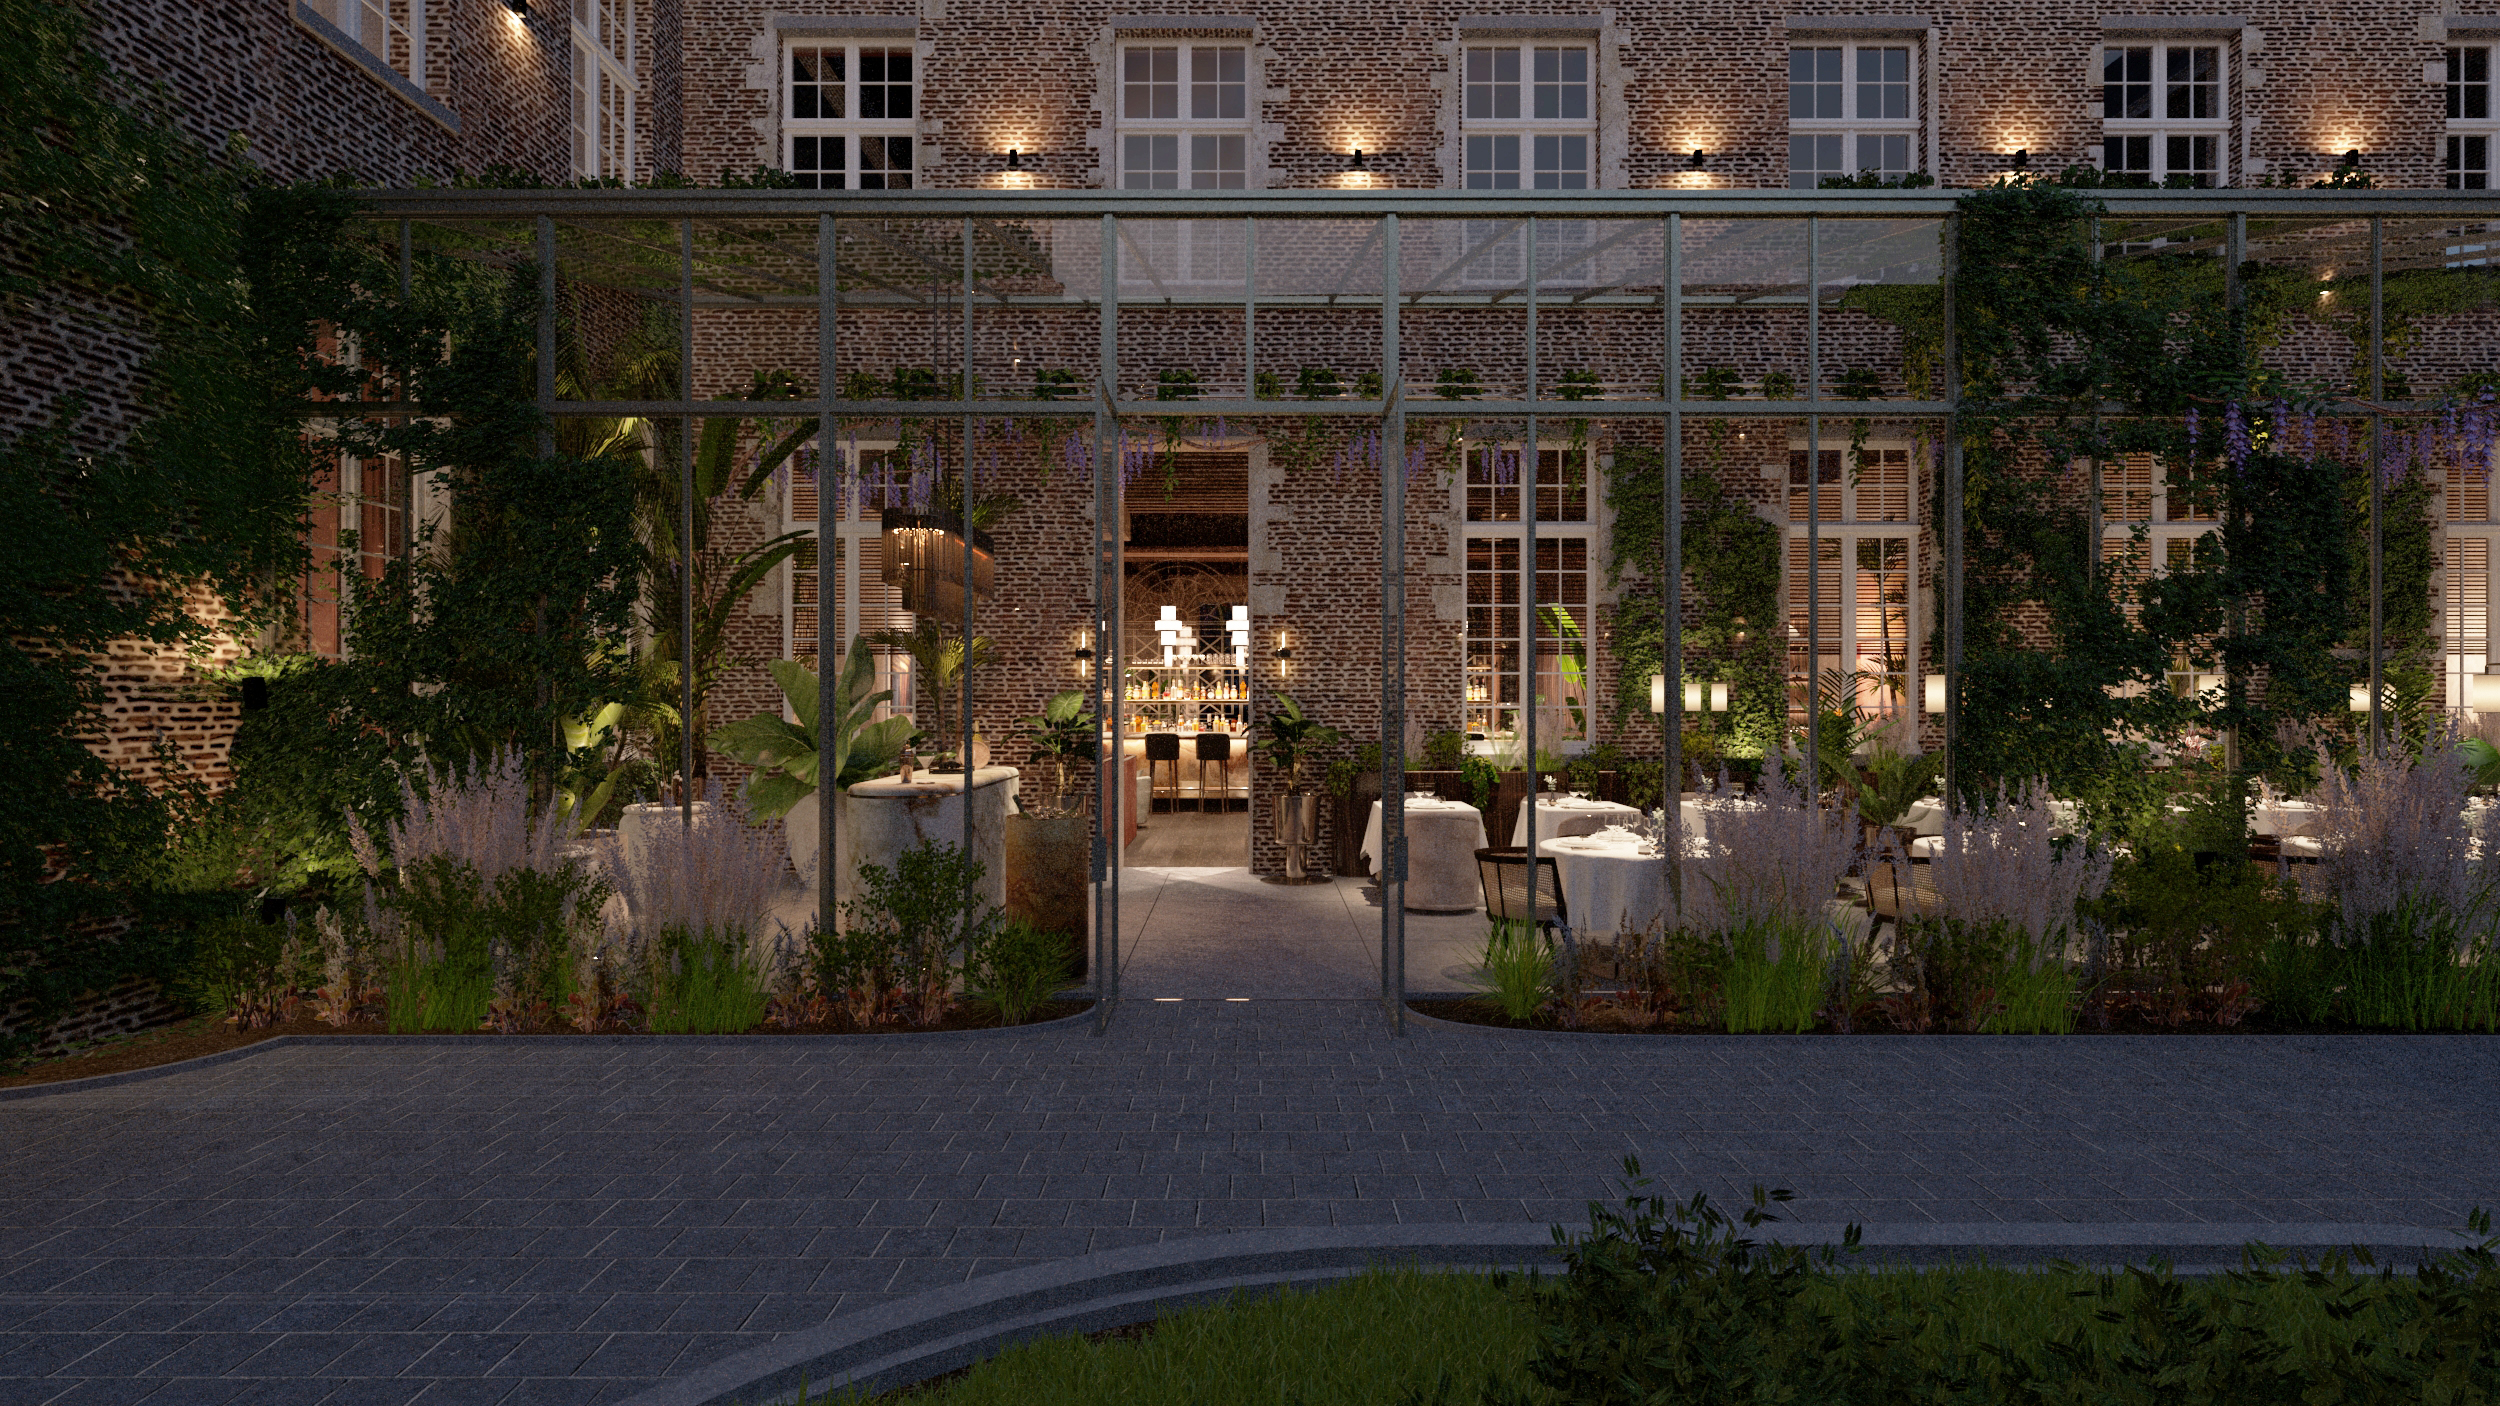 Vasco- former convent converted into luxurious boutique hotel